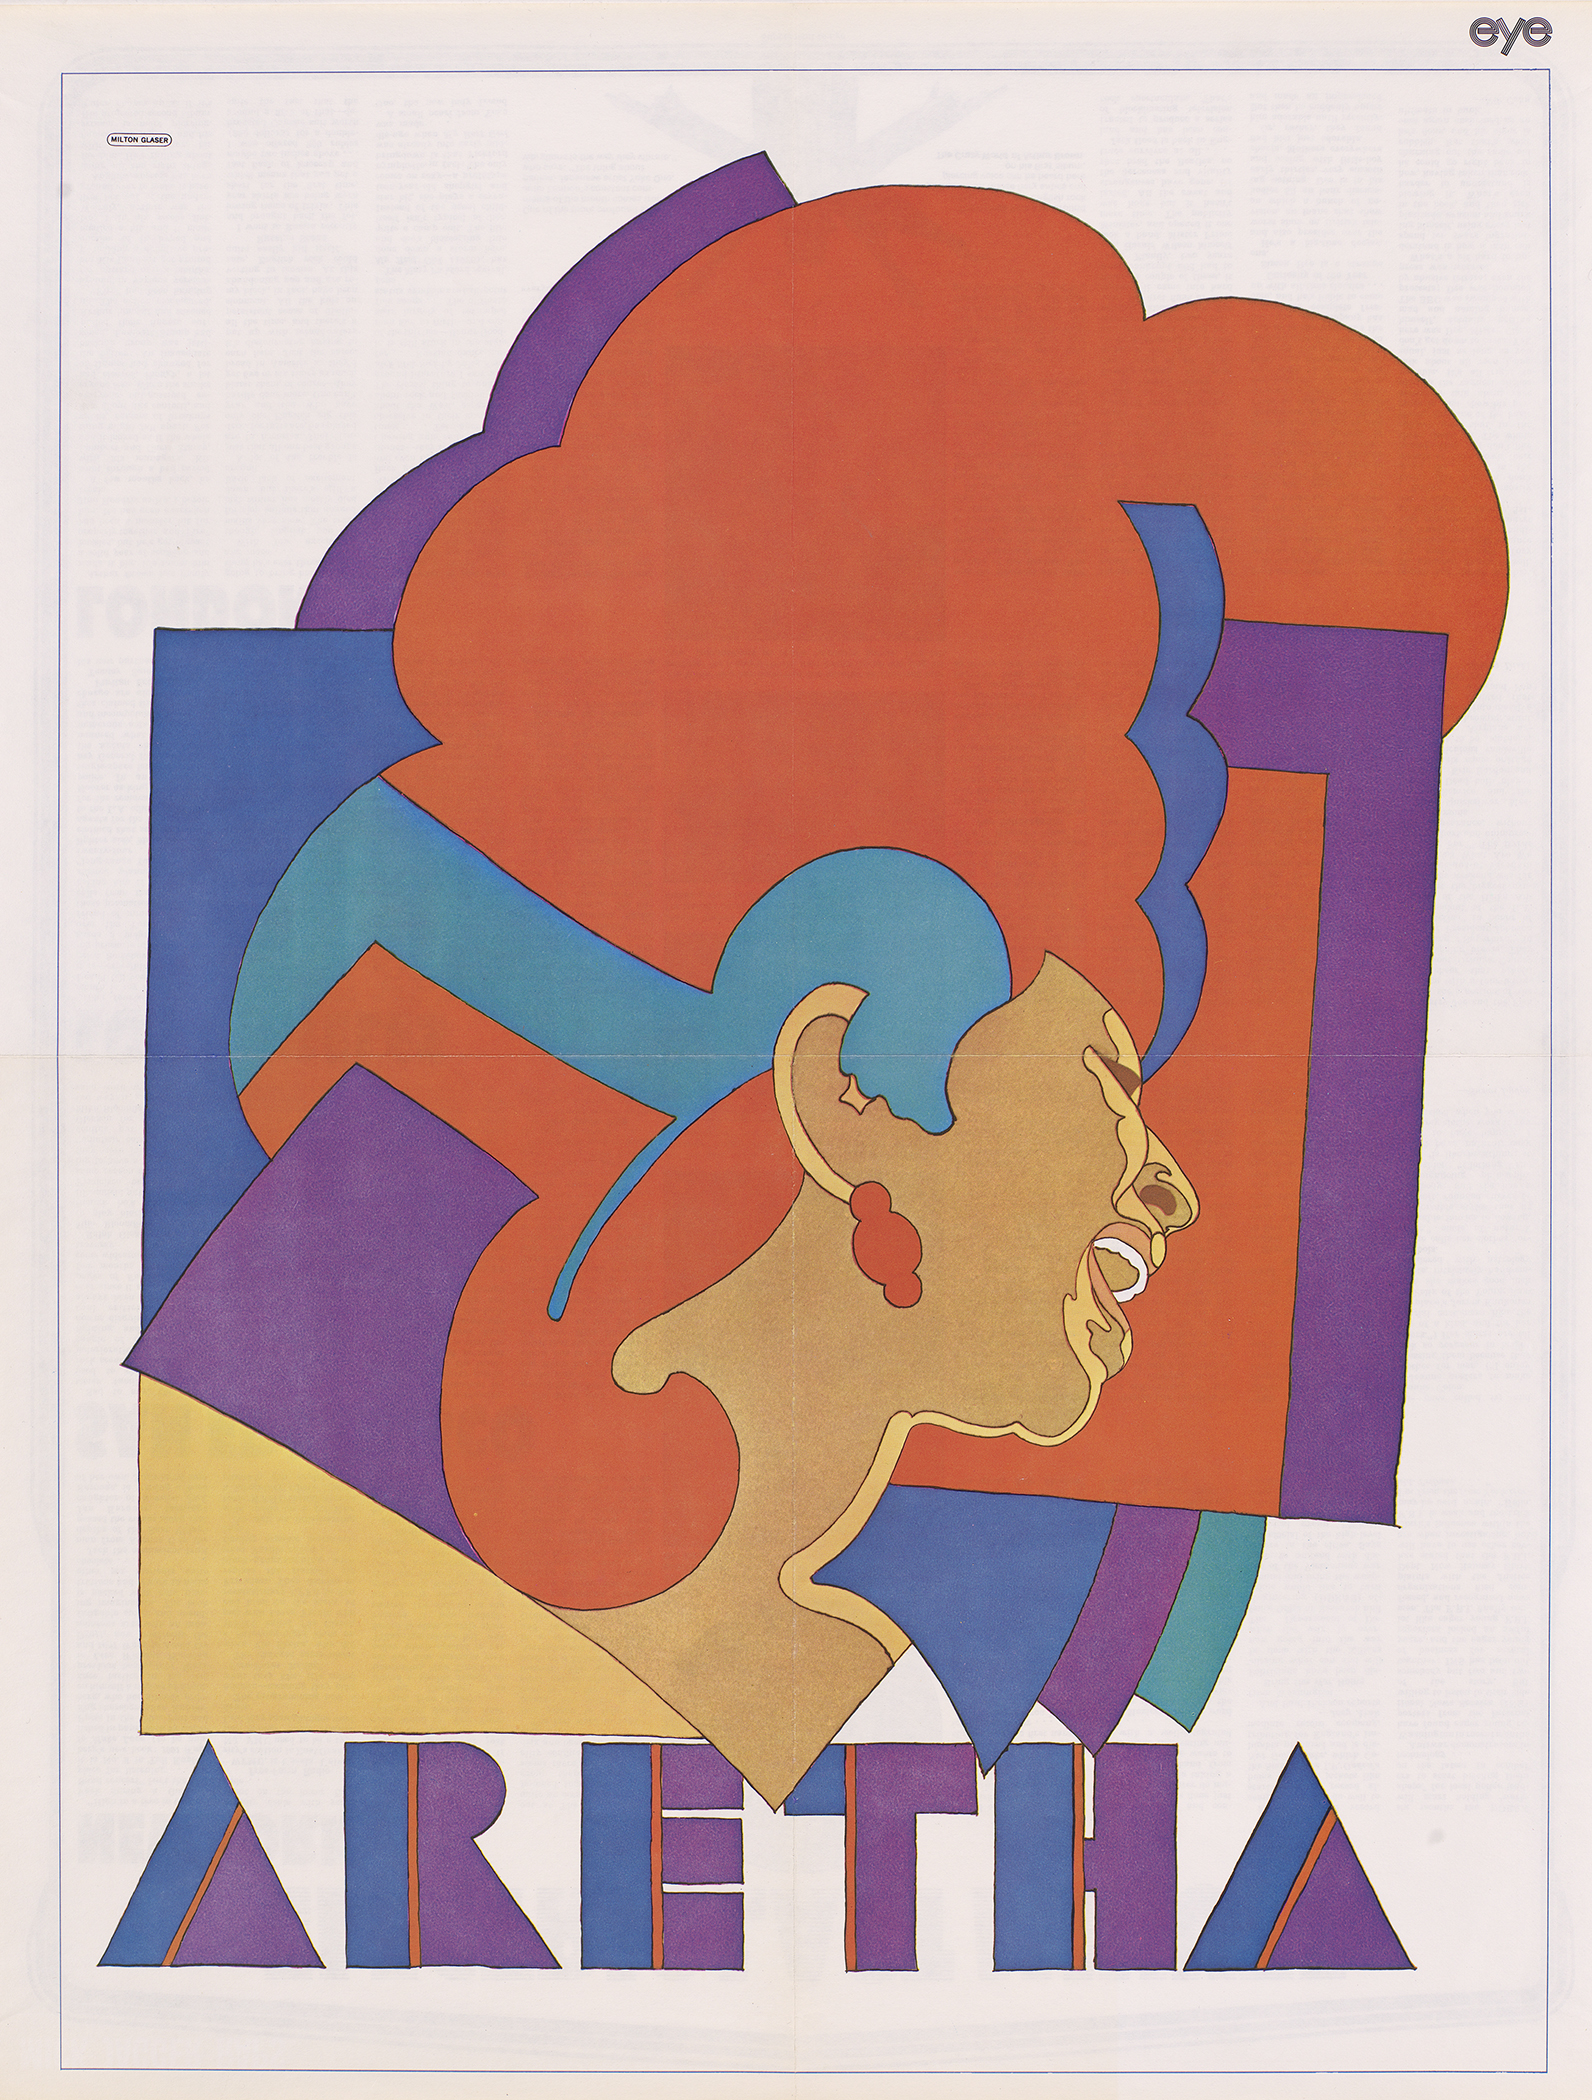 Poster of Aretha Franklin